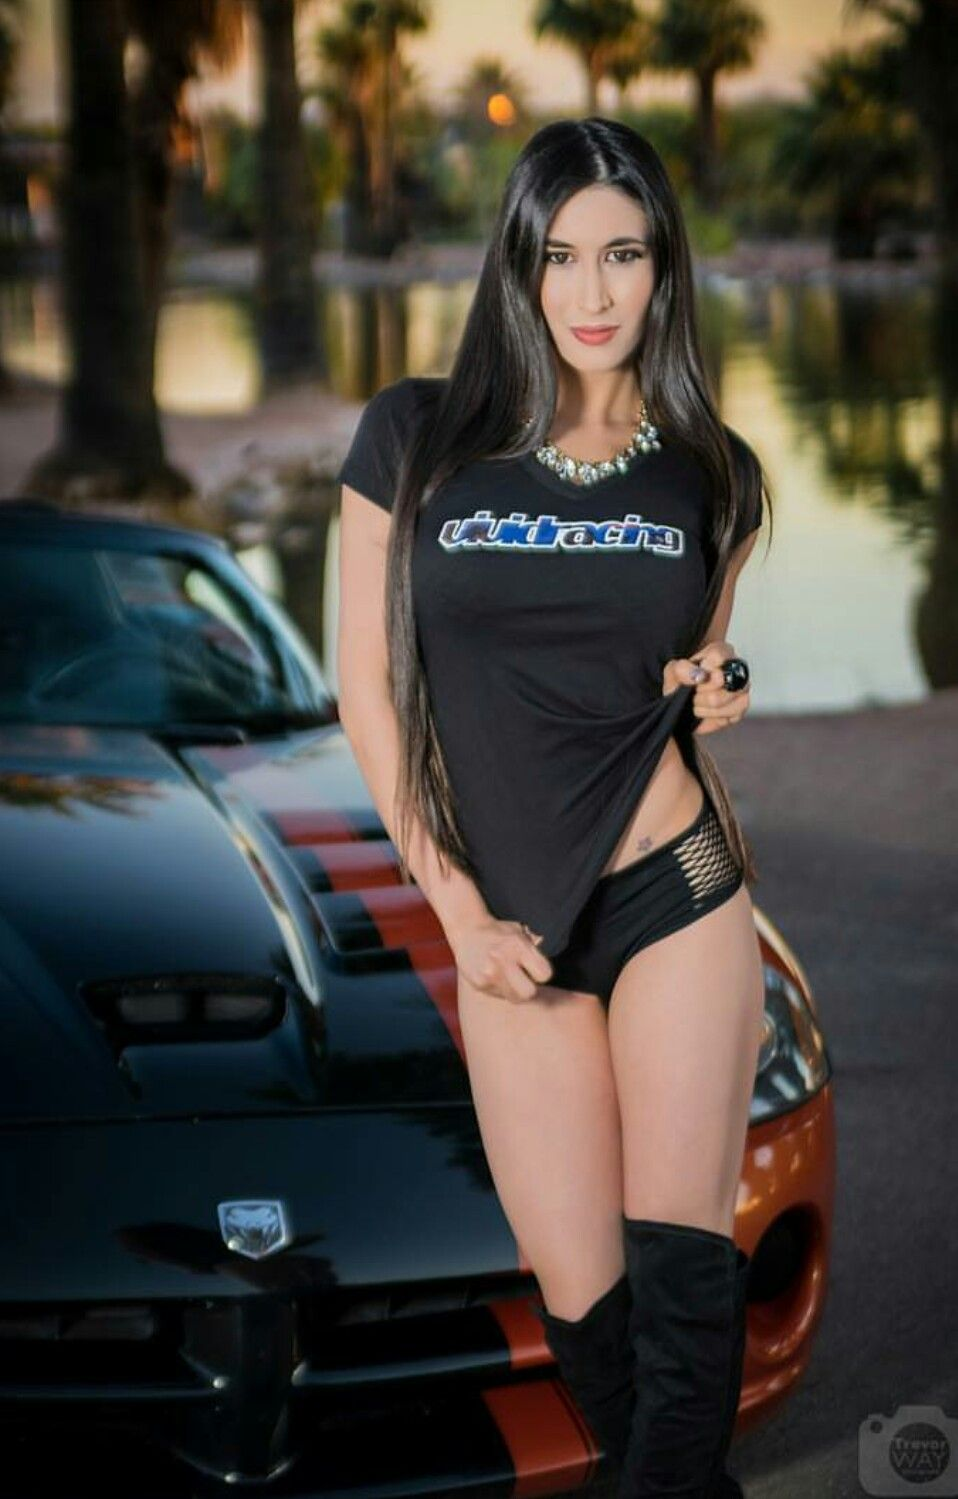 Fast Cars And Girls Wallpaper List Of Synonyms And Antonyms Of The Word Mopar Gals